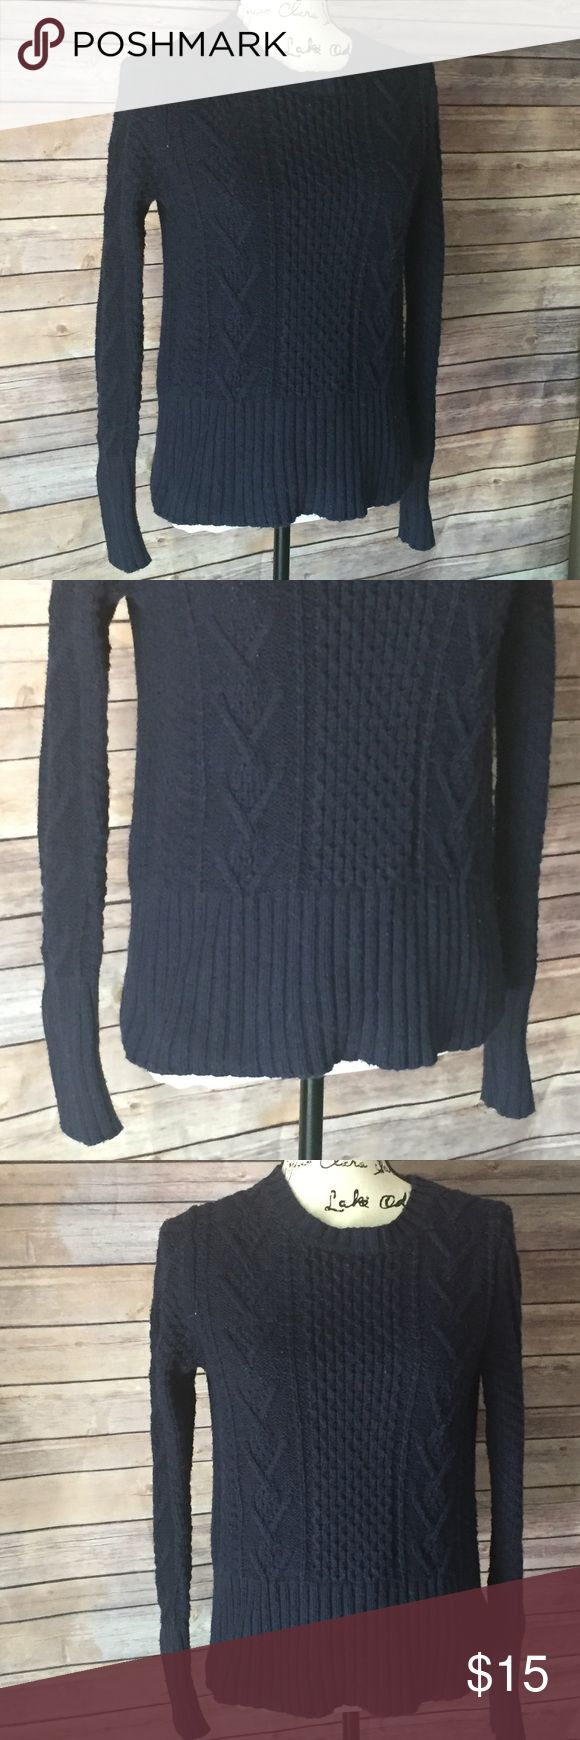 GAP Chunky Knit Sweater Navy blue warm and cozy GAP Chunky Knit Sweater. Size M, VGUC. Sweaters